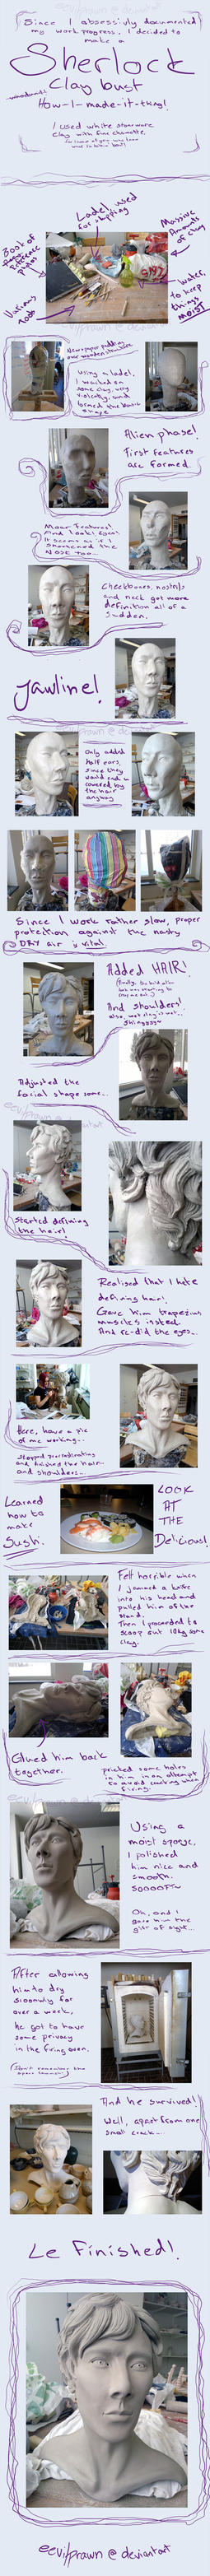 Sherlock: Work Progress by perpetualperversions